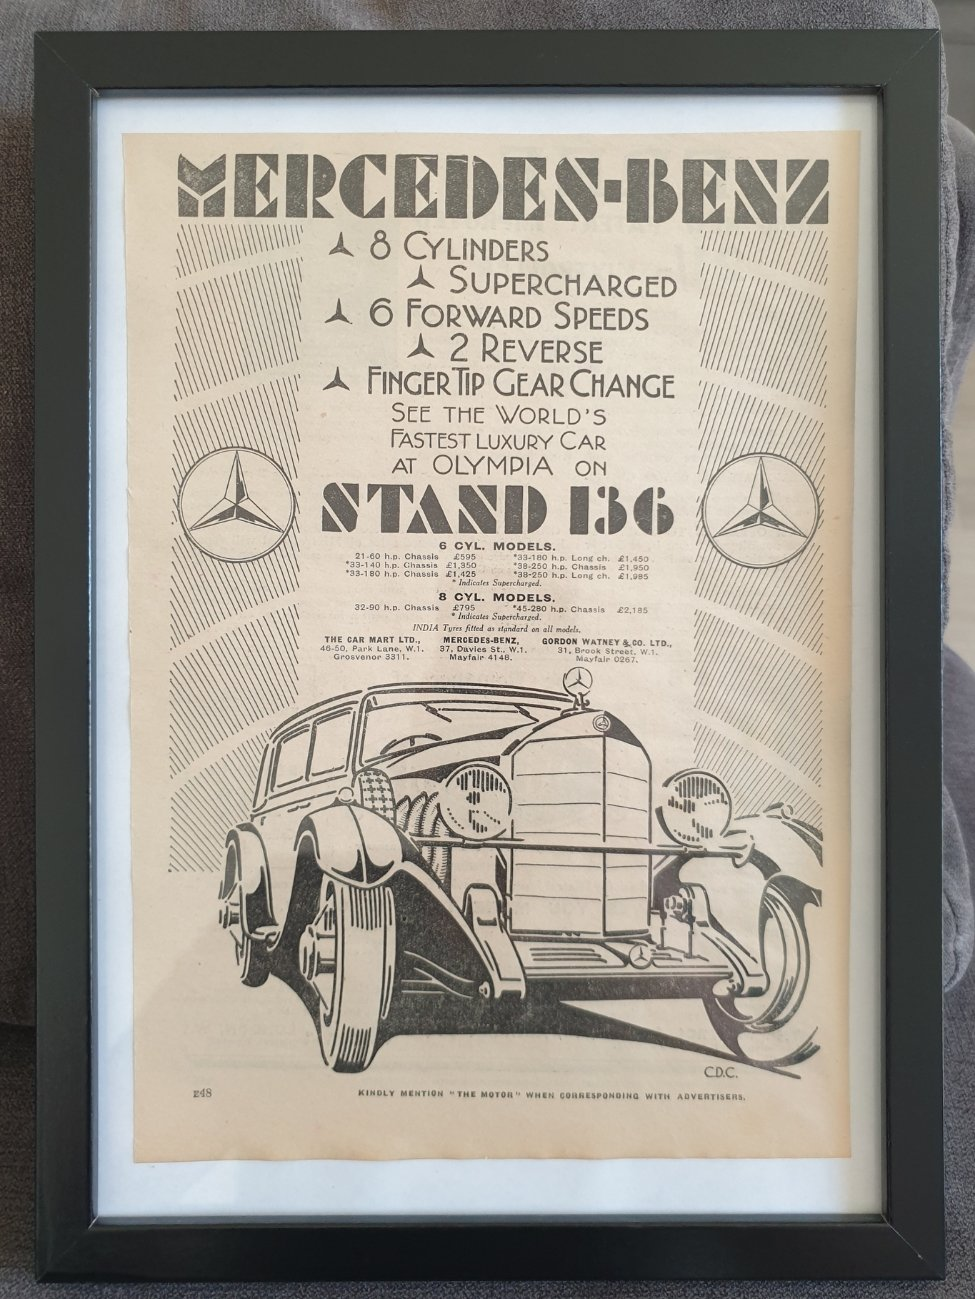 1970 Original 1930 Mercedes-Benz Framed Advert For Sale (picture 1 of 3)